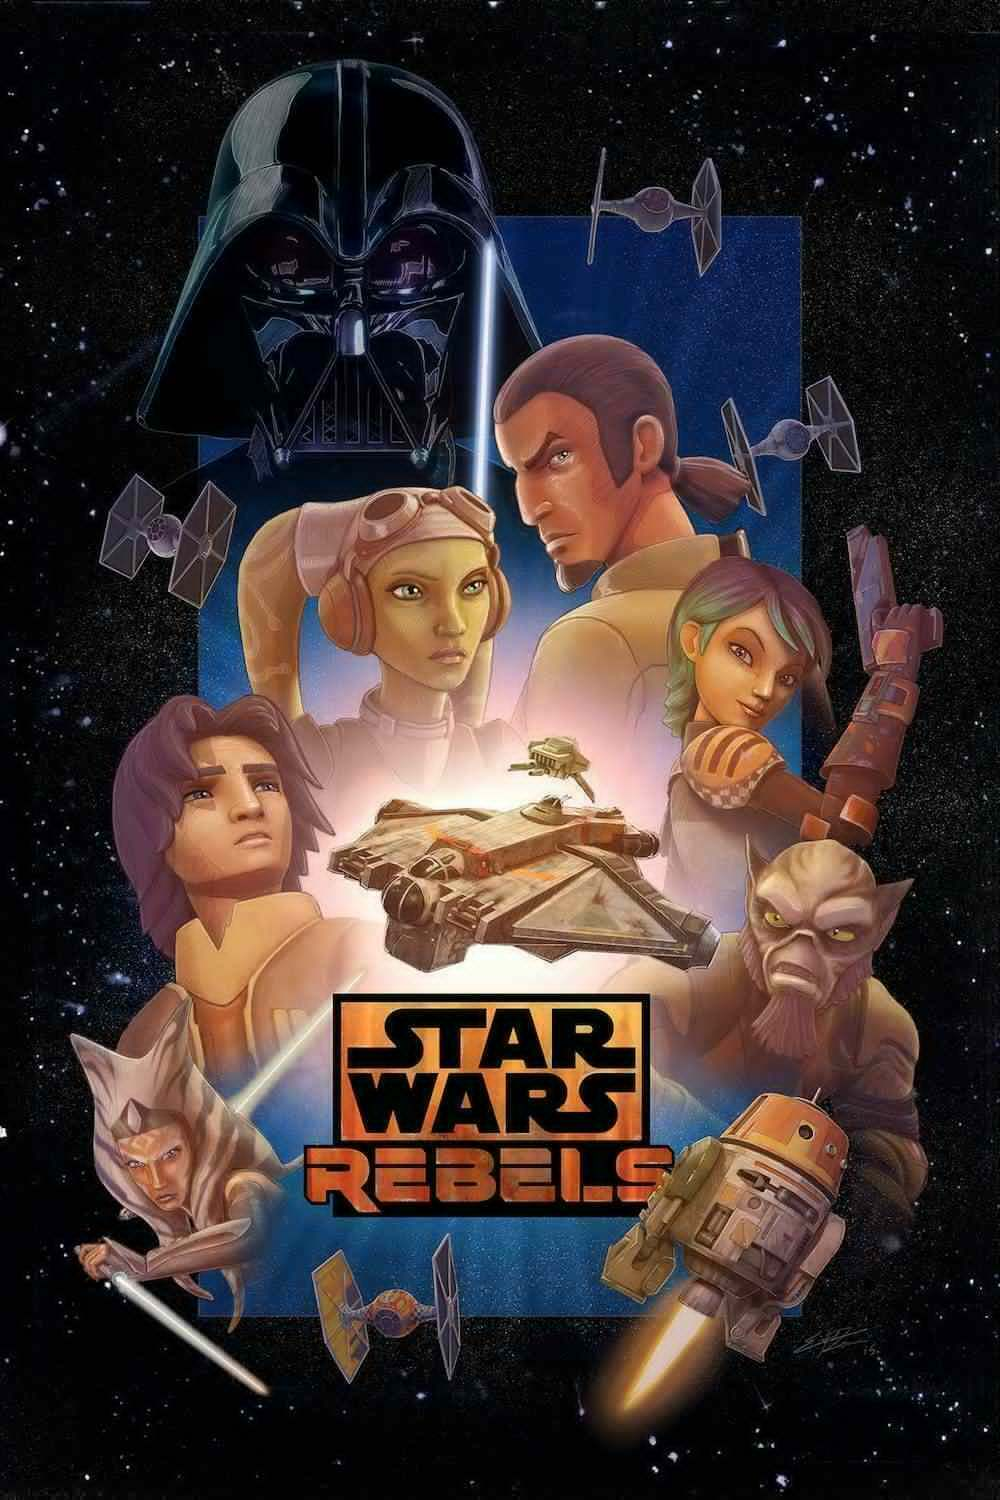 STAR WARS REBELS MOVIE Art Film Print Silk Poster Home Wall Decor 24x36inch image